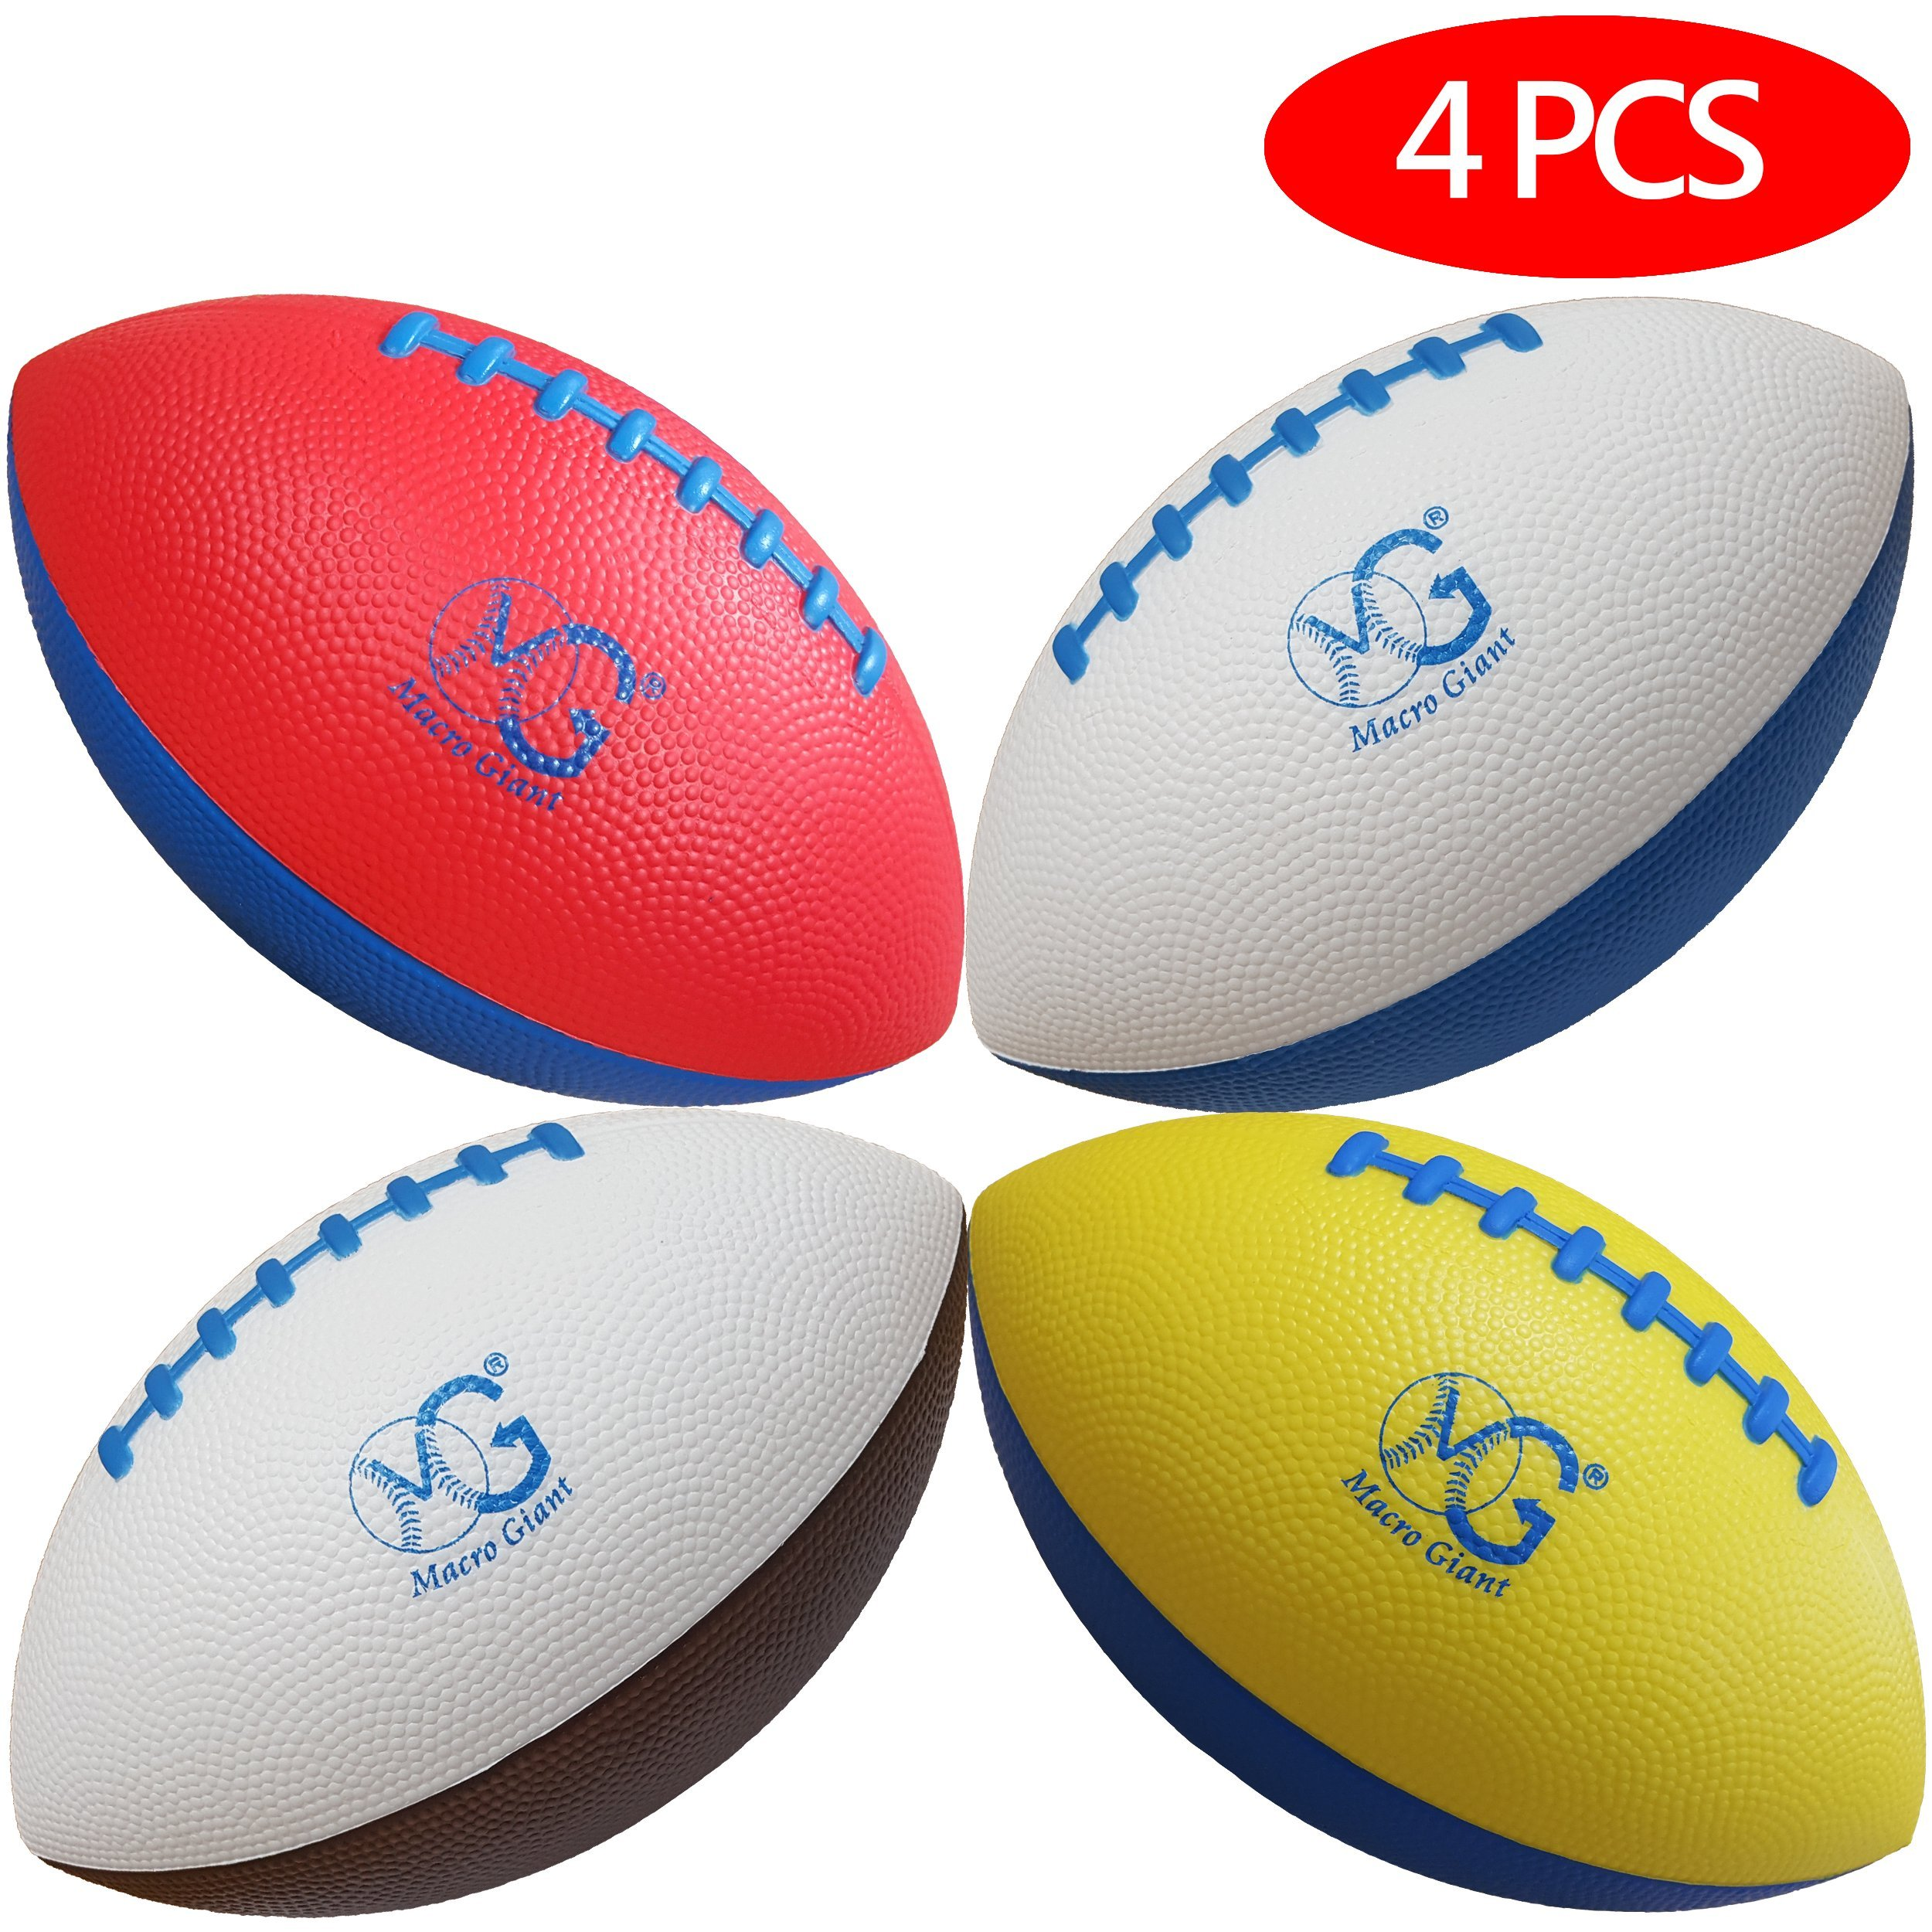 Macro Giant 9 Inch Foam Football, Set of 4, 4 Colors (Blue, Brown, Yellow, Red), Beginner, Training Practice